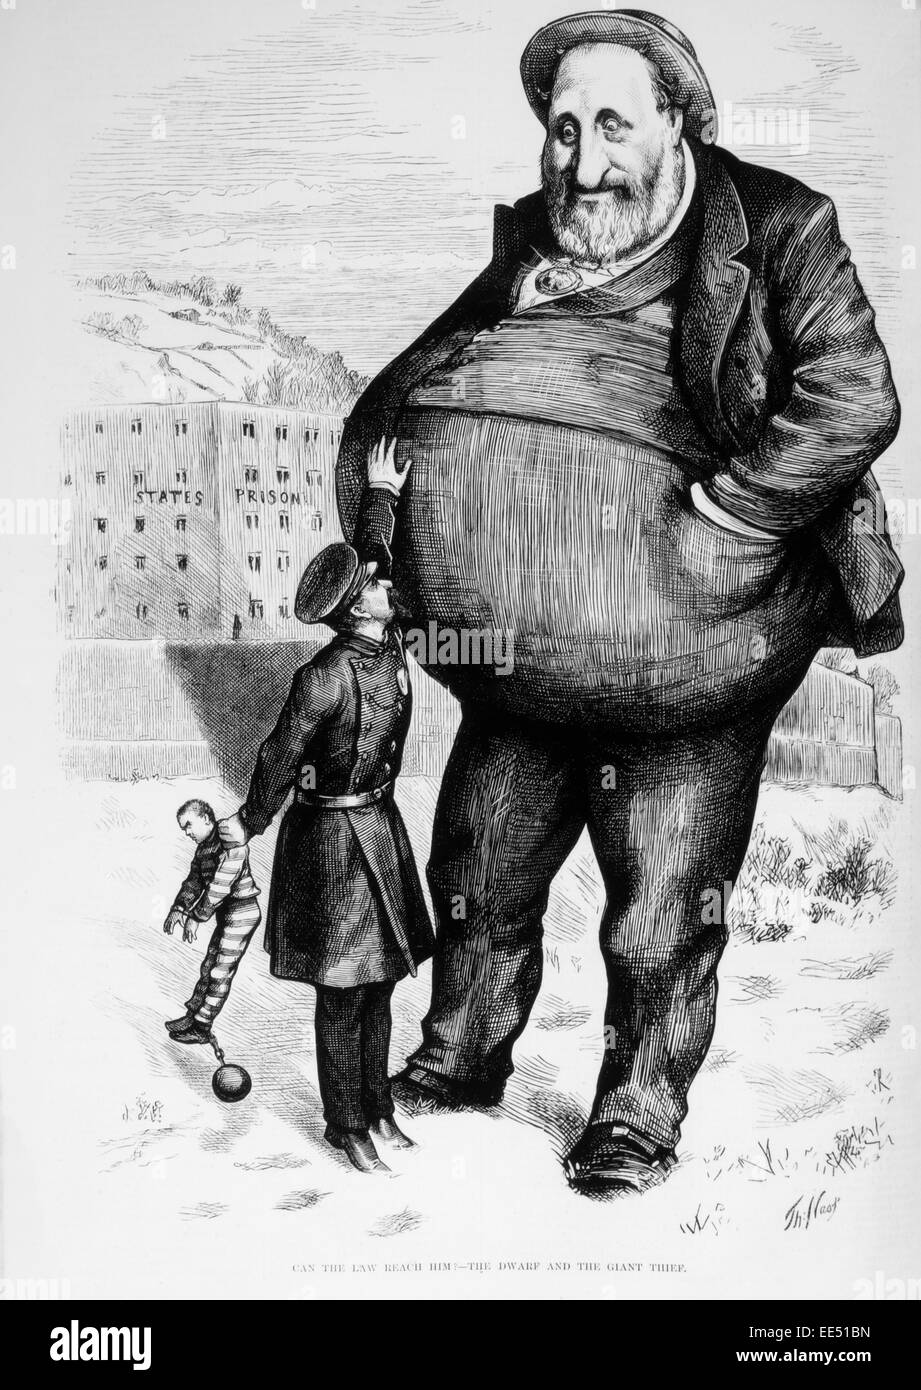 Anti Tammany Hall Political Cartoon Featuring William M